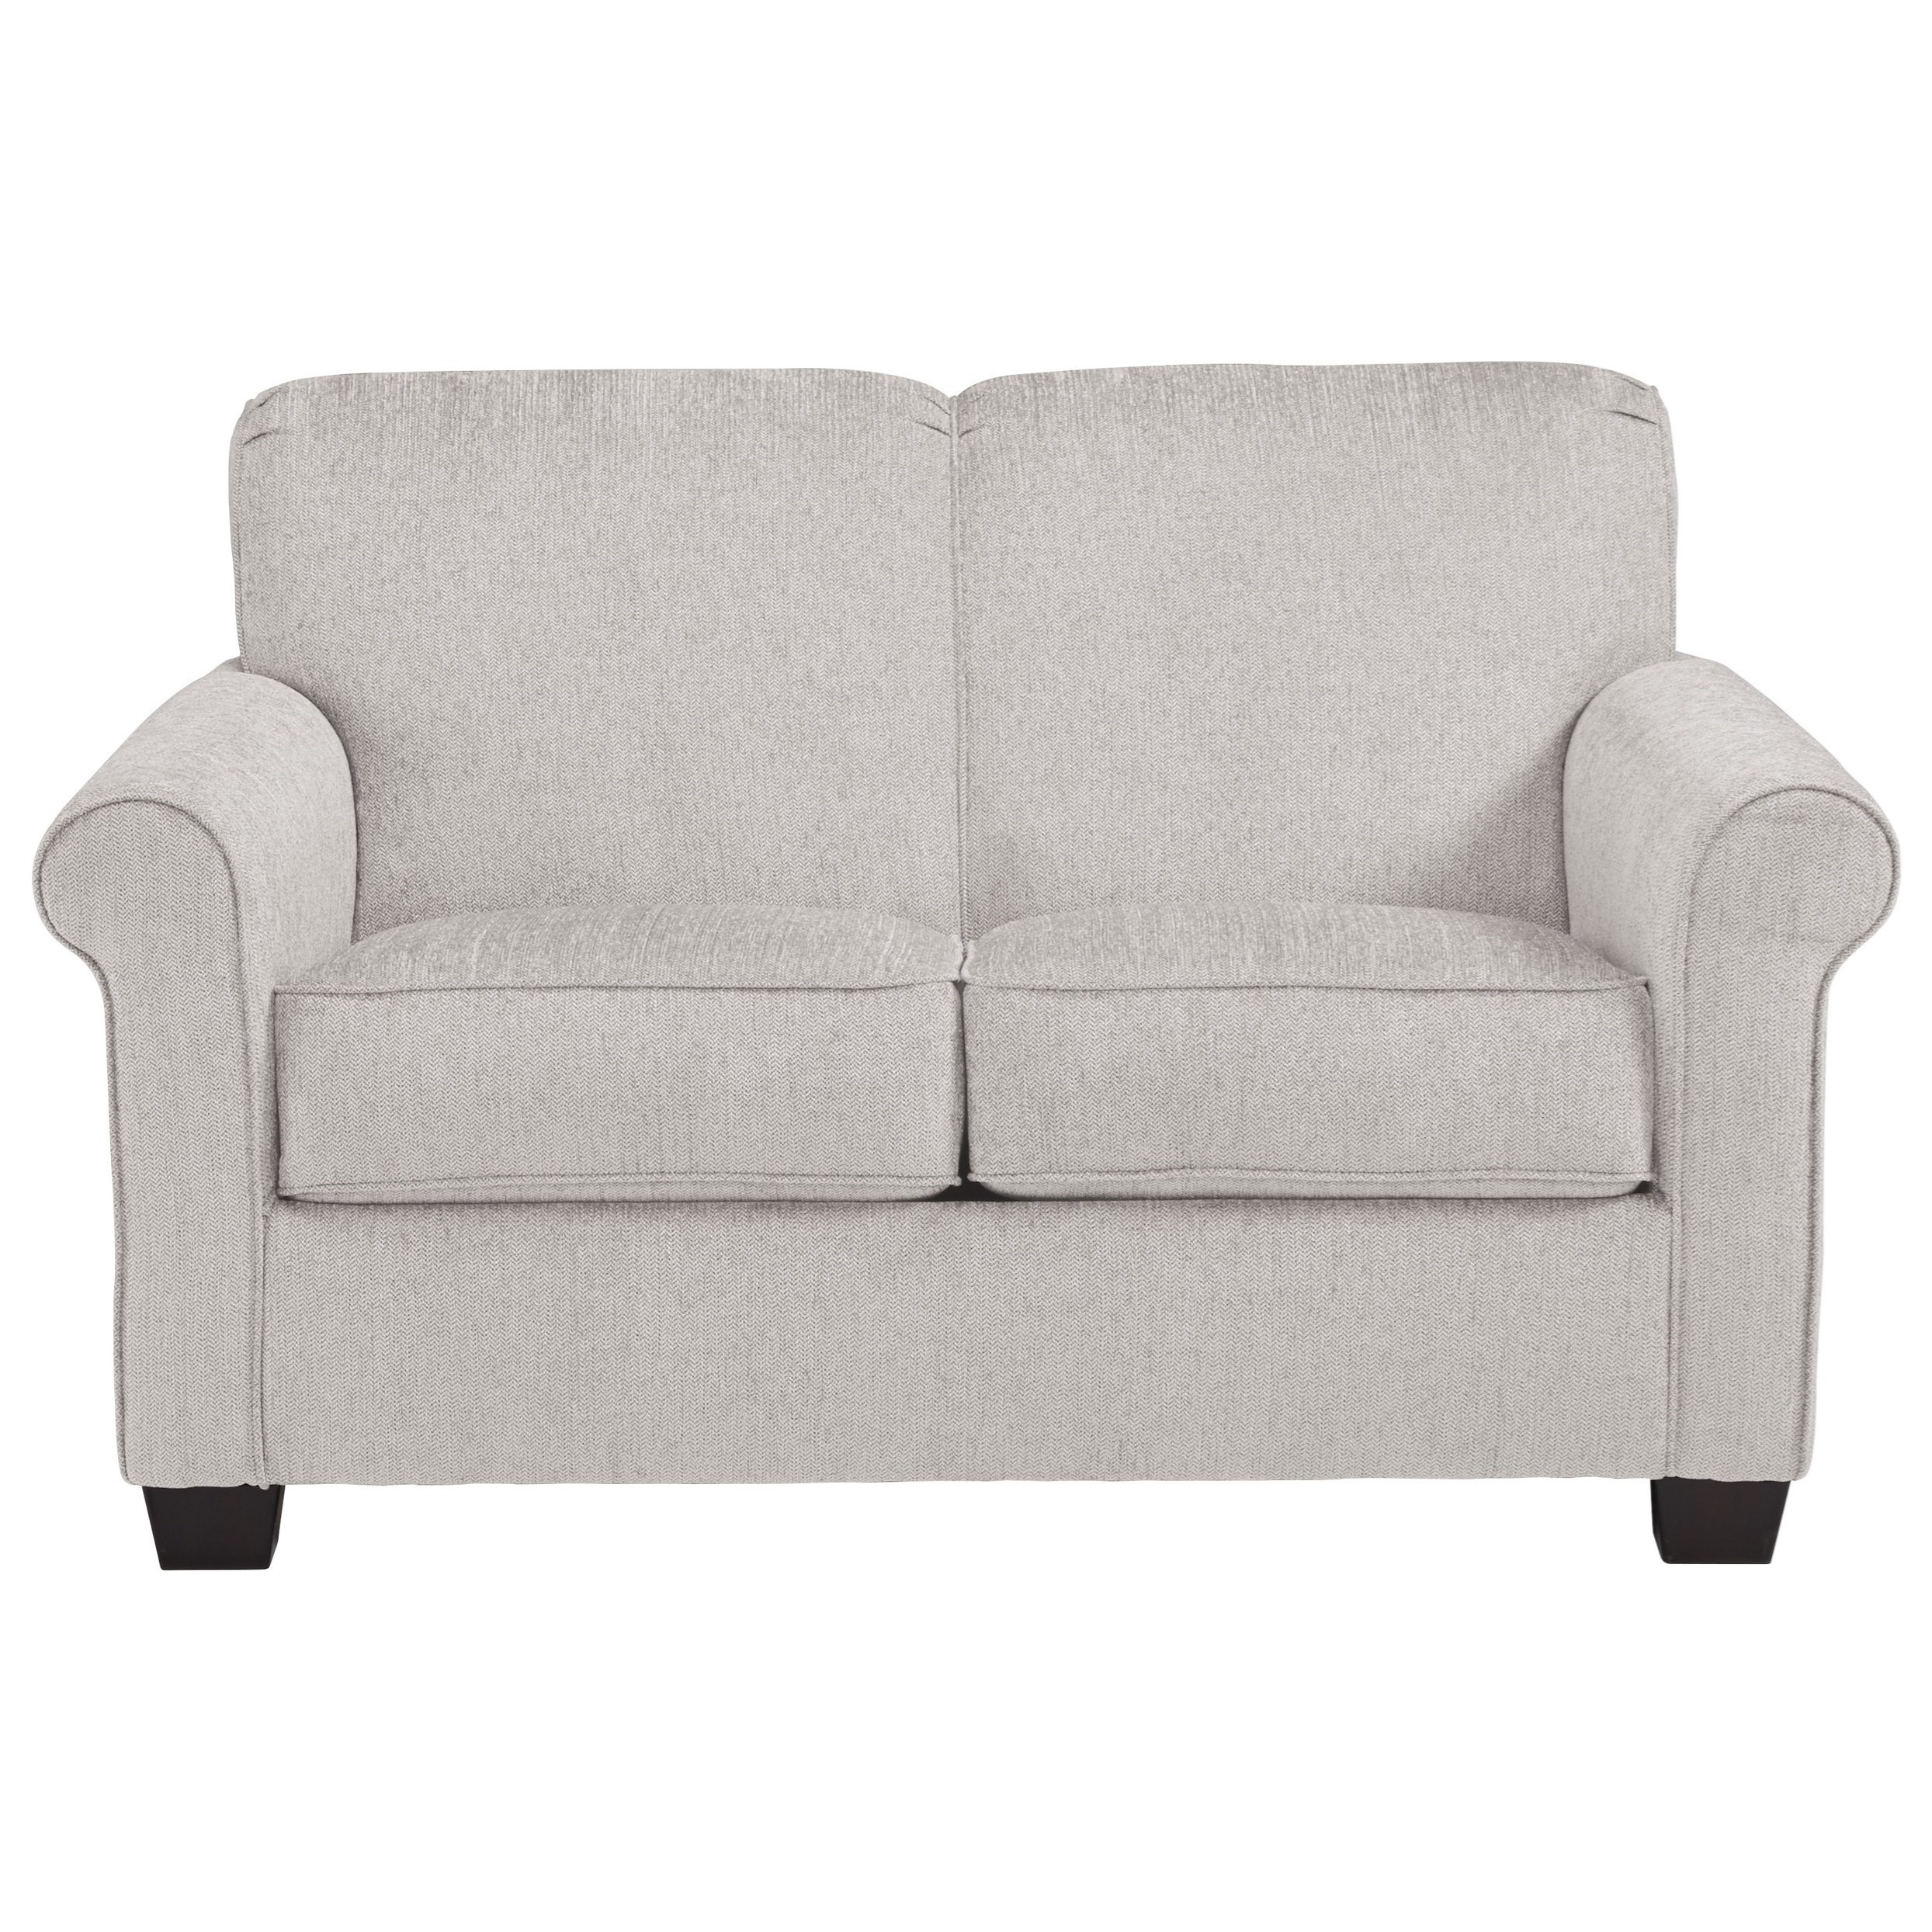 signature design by ashley cansler 7380737 twin sleeper sofa rh northeastfactorydirect com ashley sleeper sofa twin lottie durablend twin sofa sleeper - ashley furniture